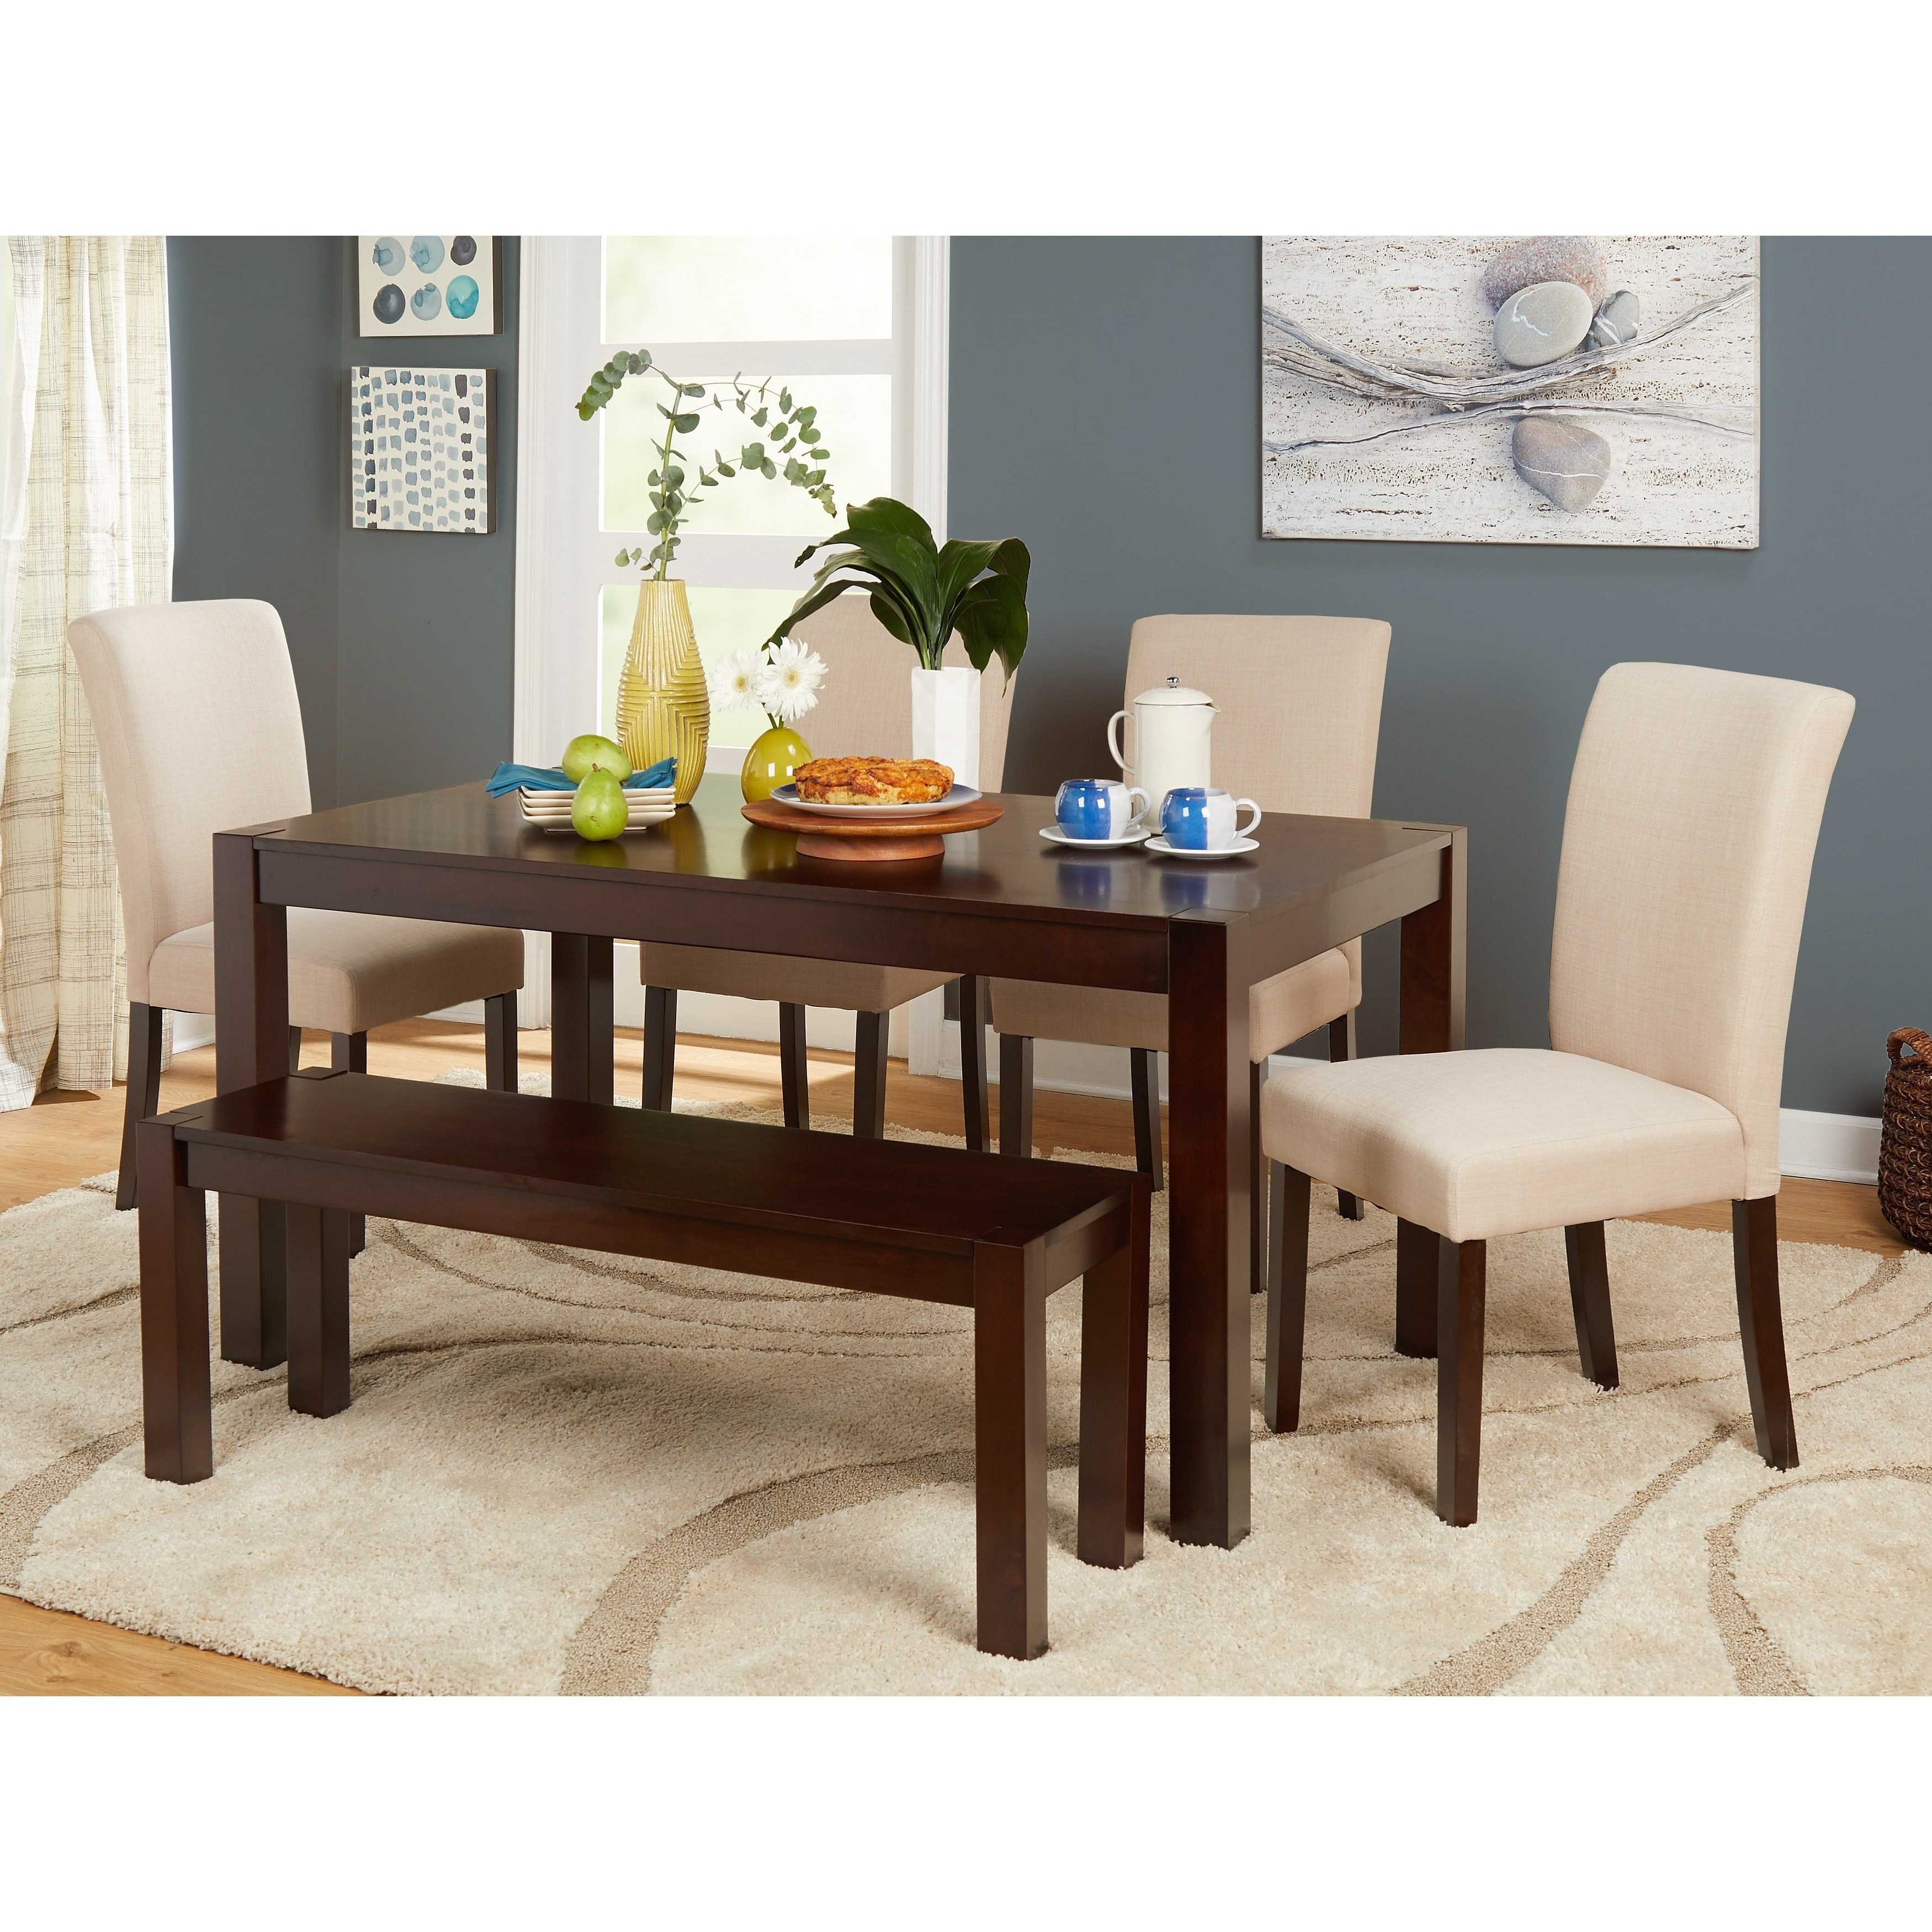 Conover 5 Piece Dining Sets Inside Well Known Shop Simple Living Axis 6 Piece Dining Set With Dining Bench – On (View 14 of 25)